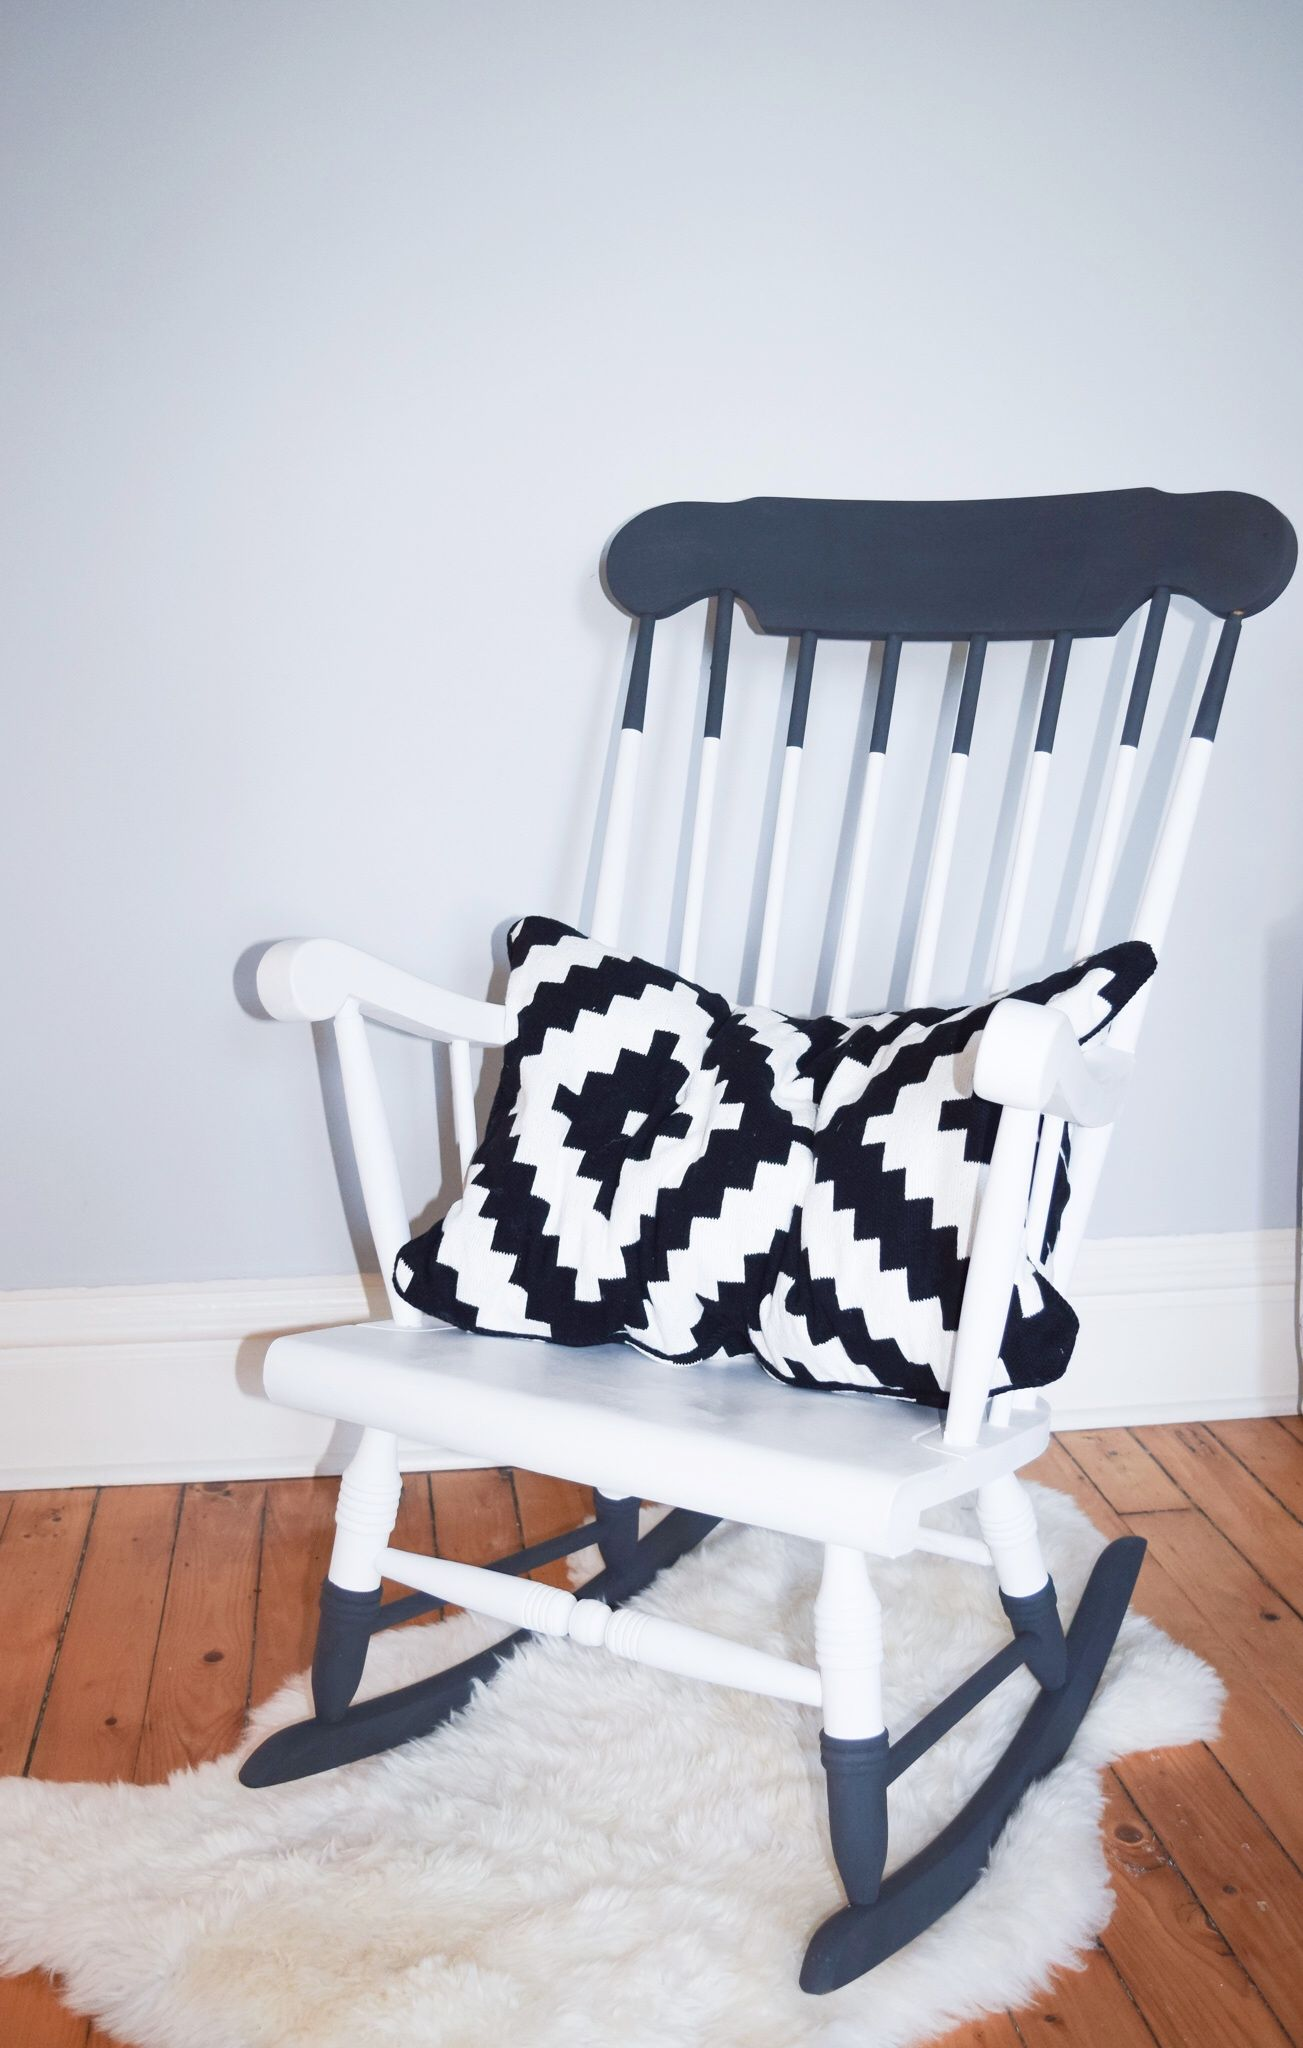 Upcycled Wooden Rocker Diy Paint Dipped Wooden Rocking Chair Rocking Chair Makeover Painted Rocking Chairs Diy Rocking Chair